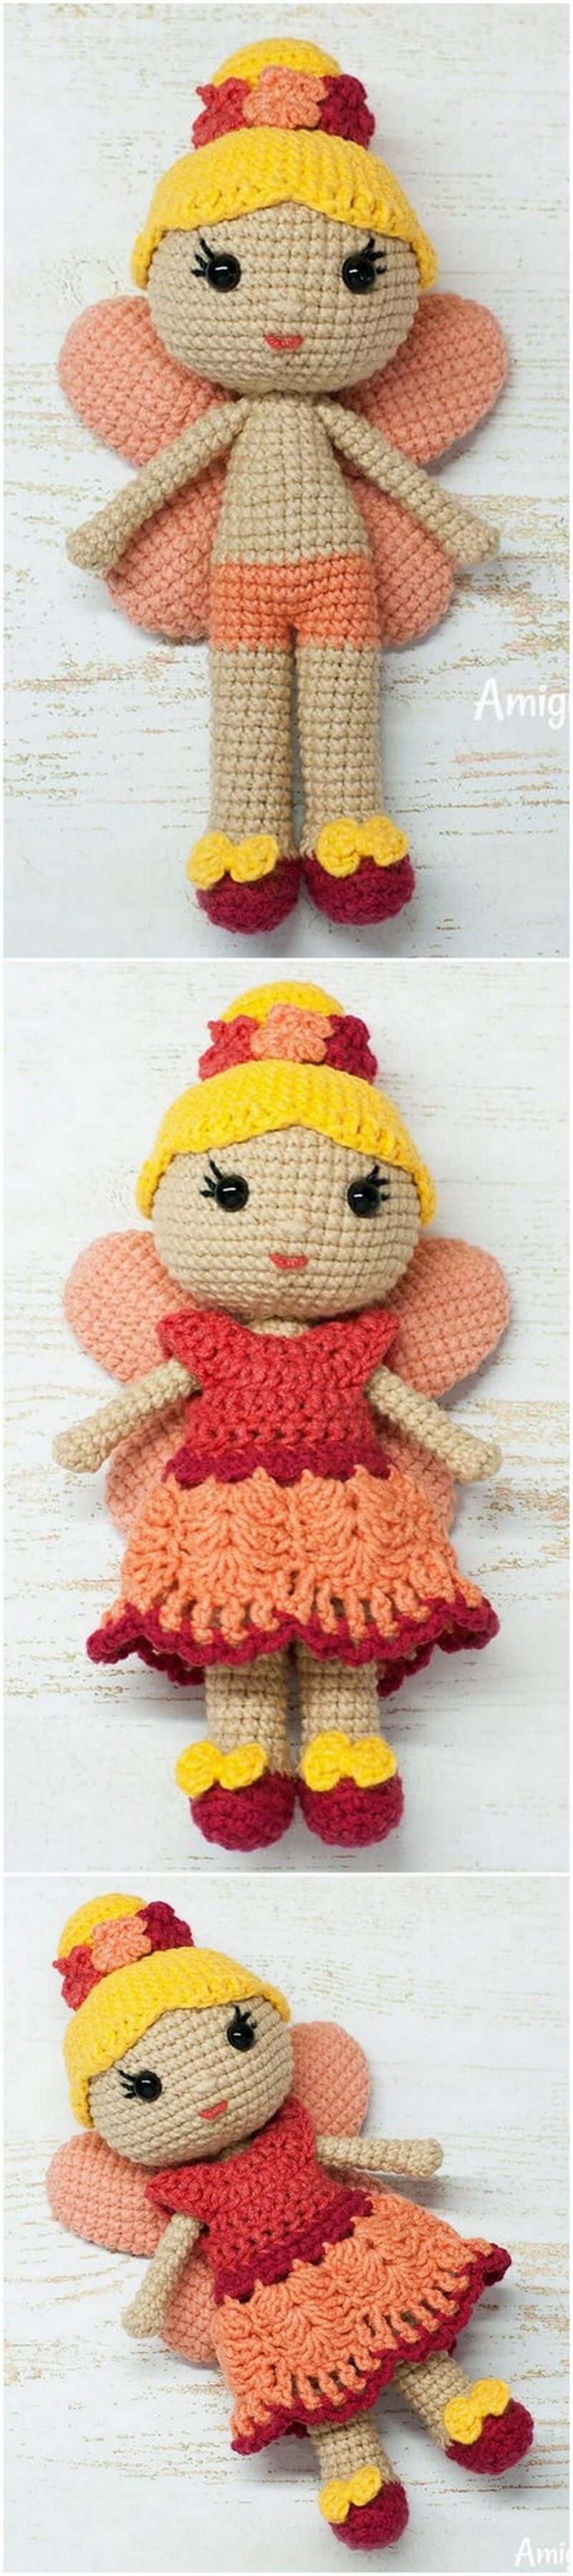 Crochet Amigurumi Doll Pattern (43)